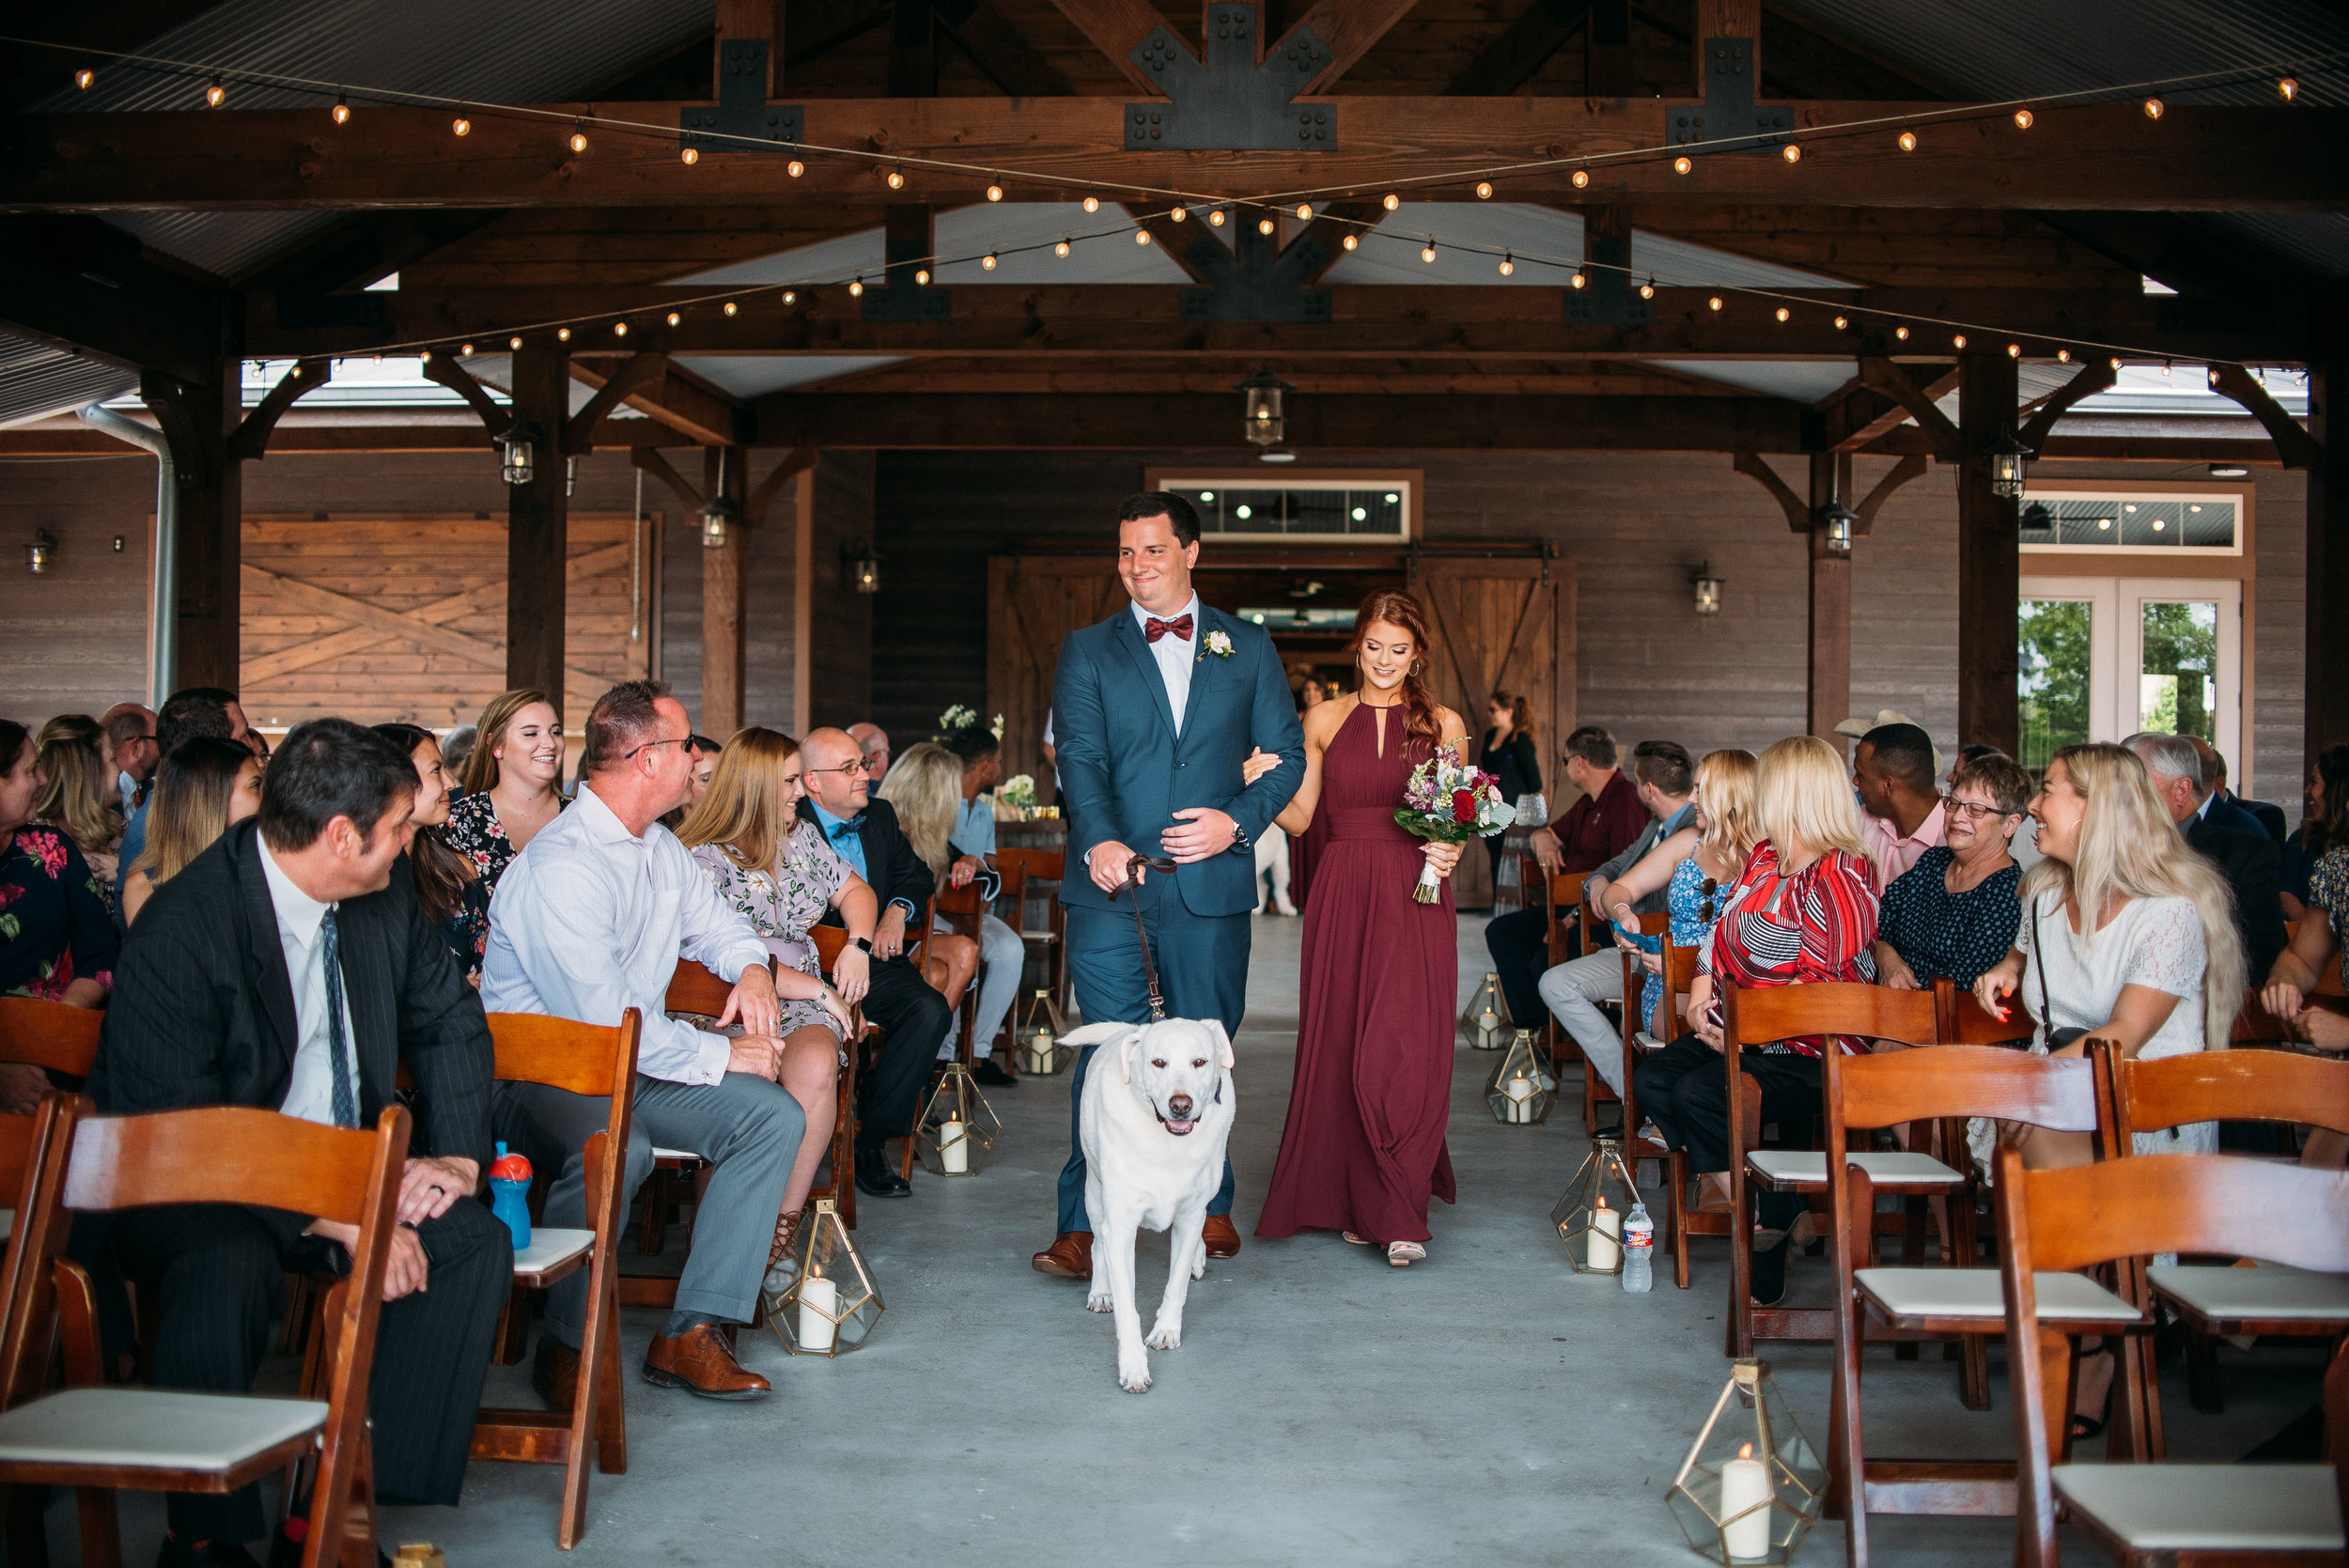 EmilyCody-Peach-Creek-Ranch-Wedding-Ceremony-Bridals-Engagement-College-Station-Photographer-Videographer-San-Angel-Photo-0155.jpg